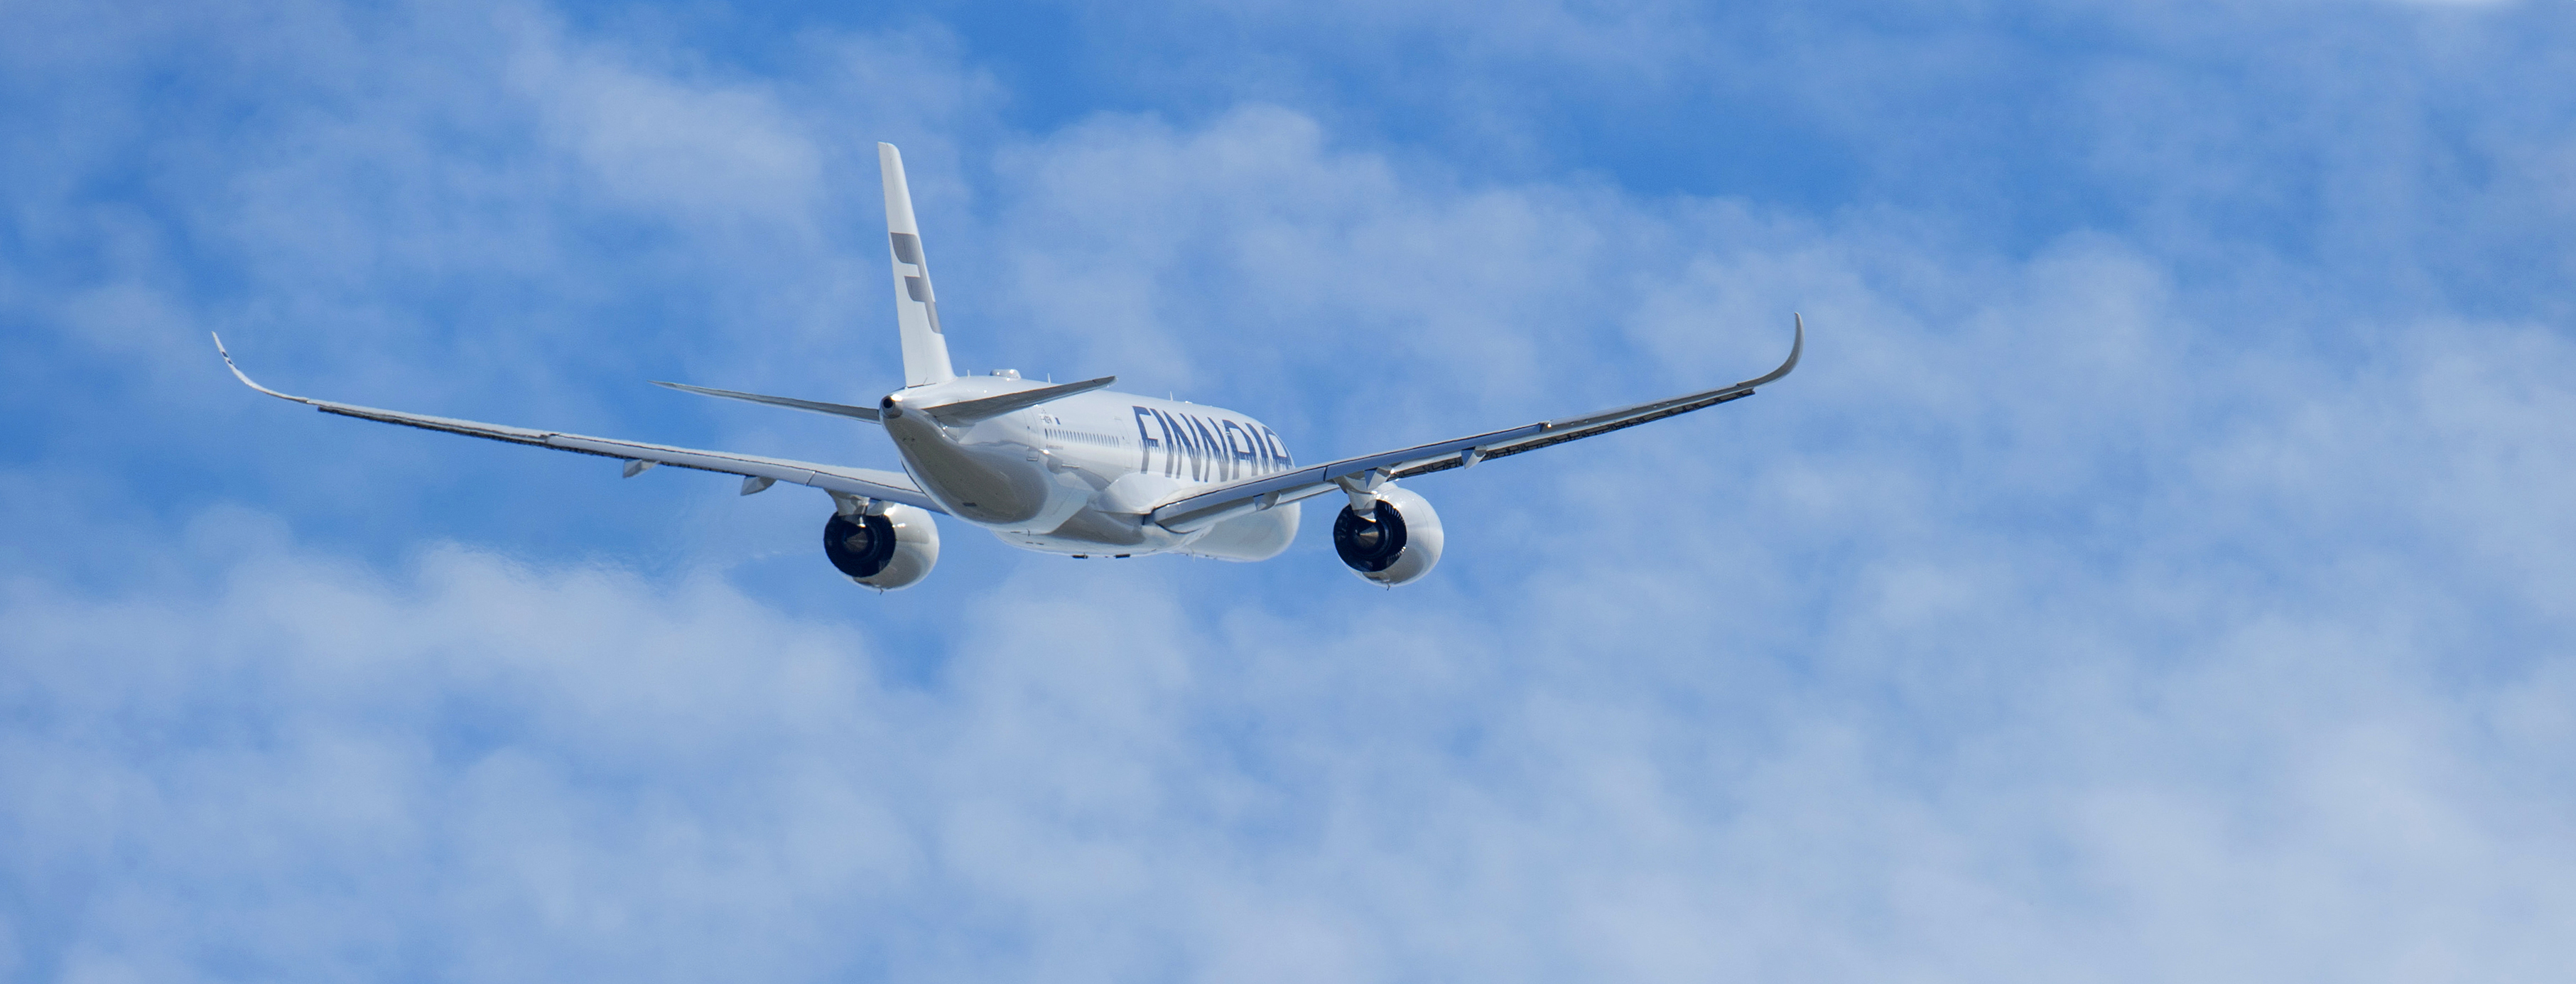 Finnair upgraded as Prime choice for sustainable and responsible investors